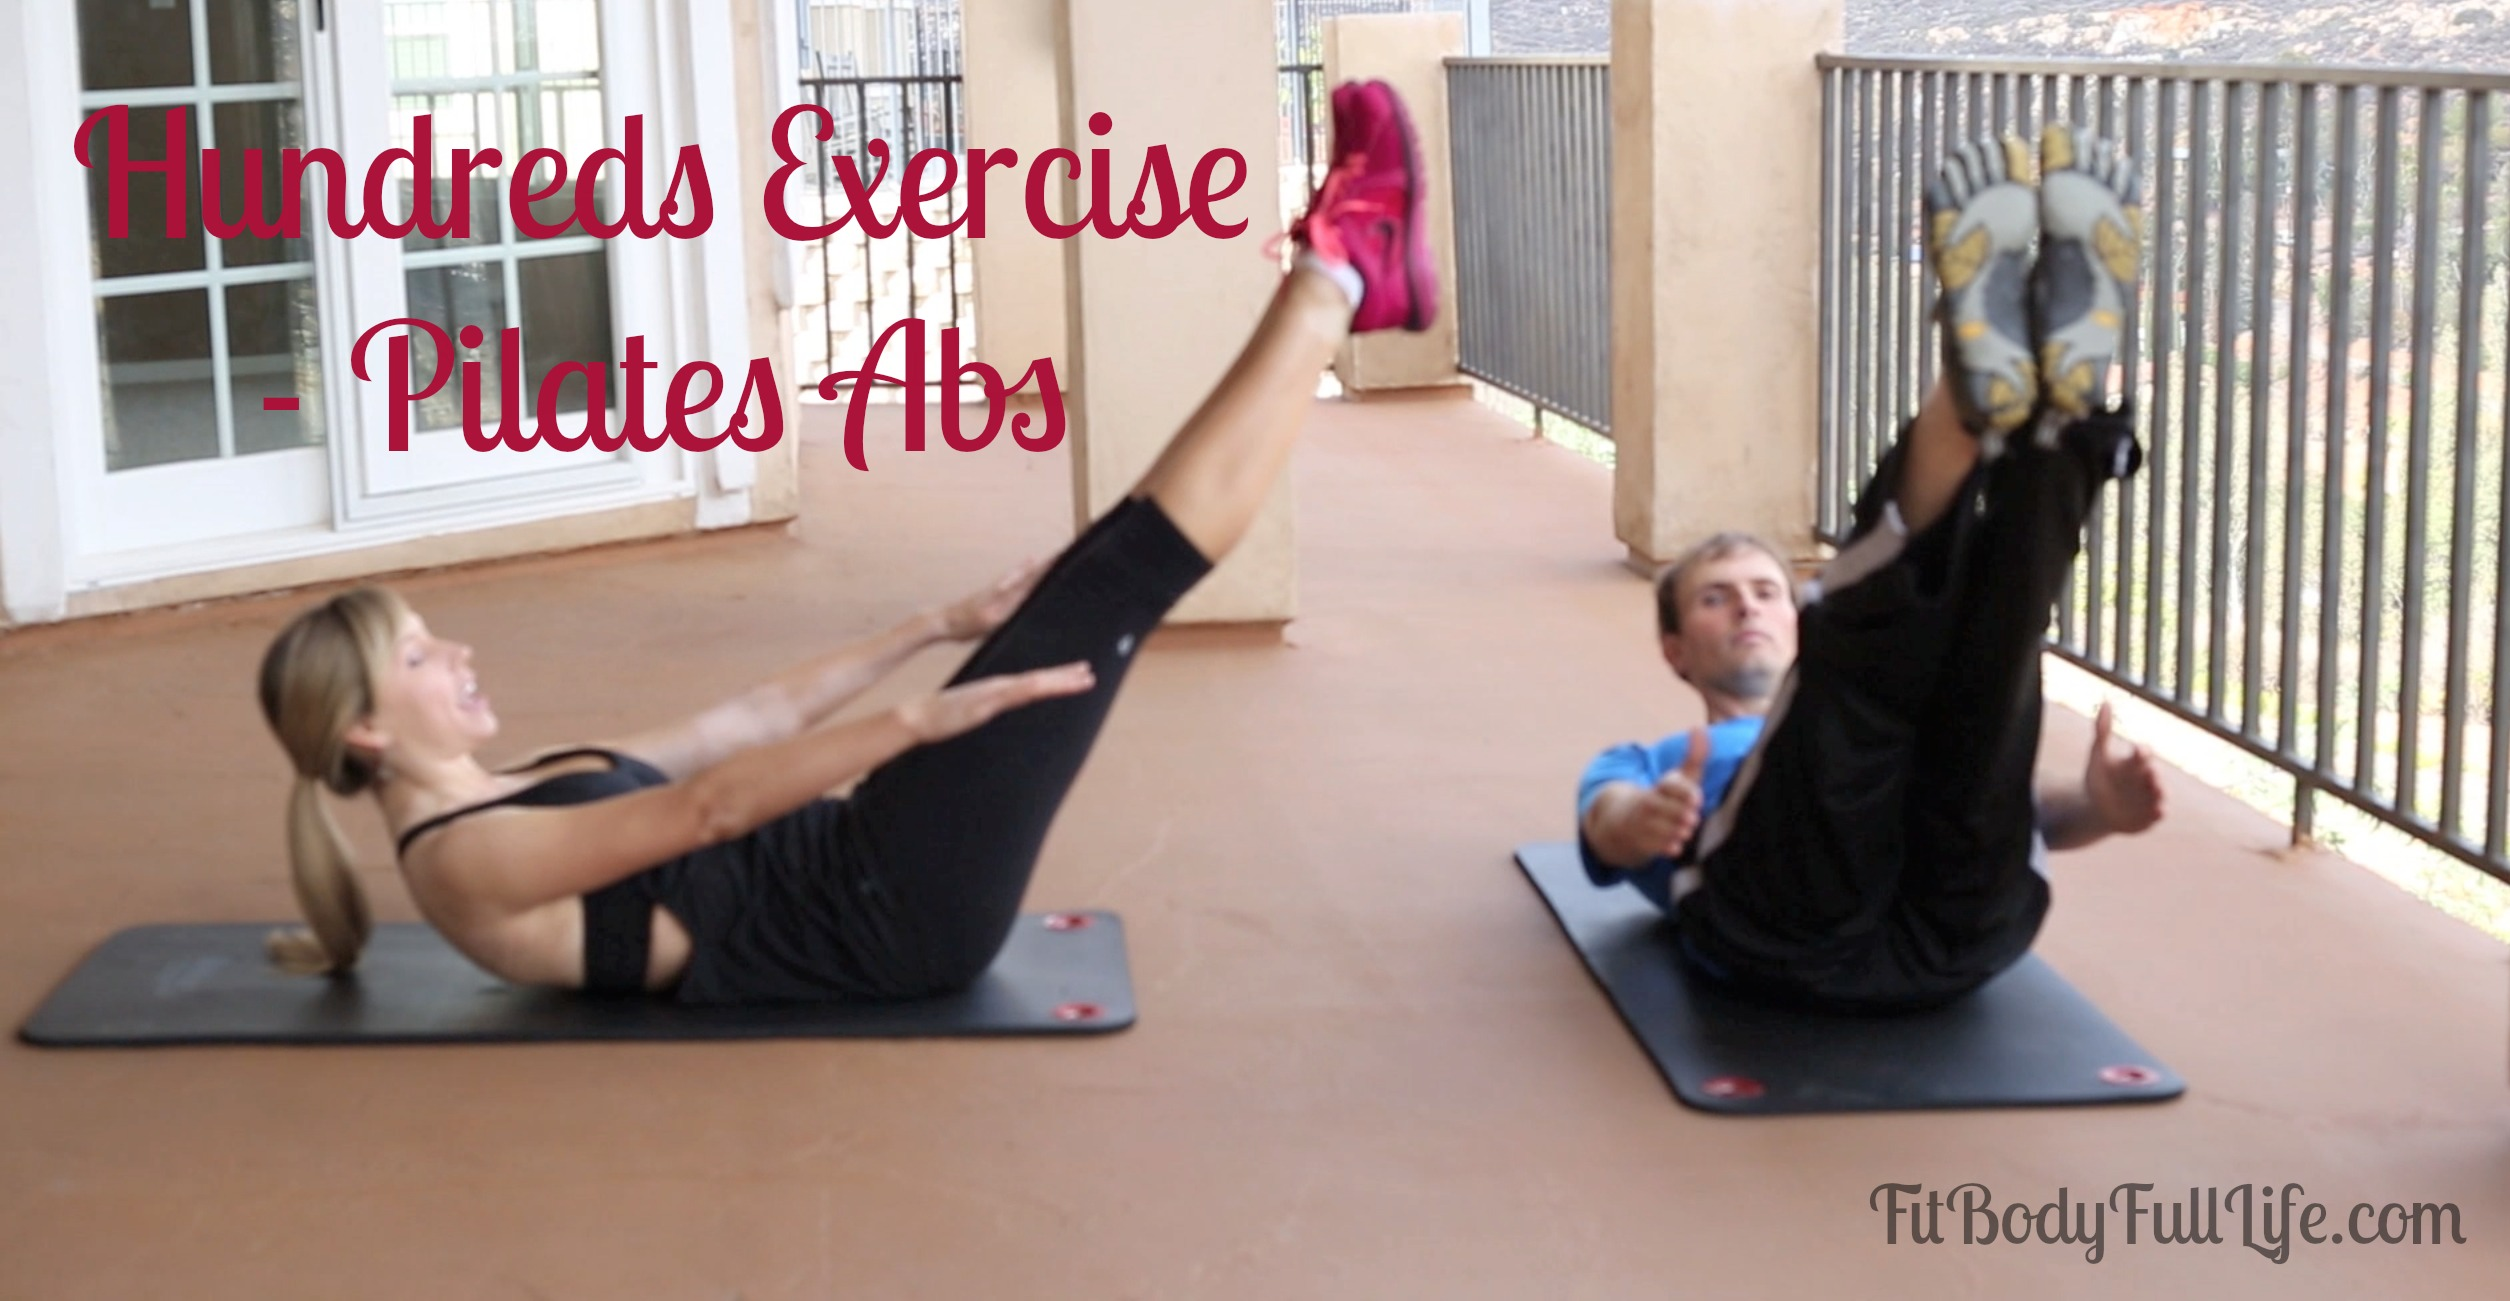 Hundreds Exercise - Pilates Abs